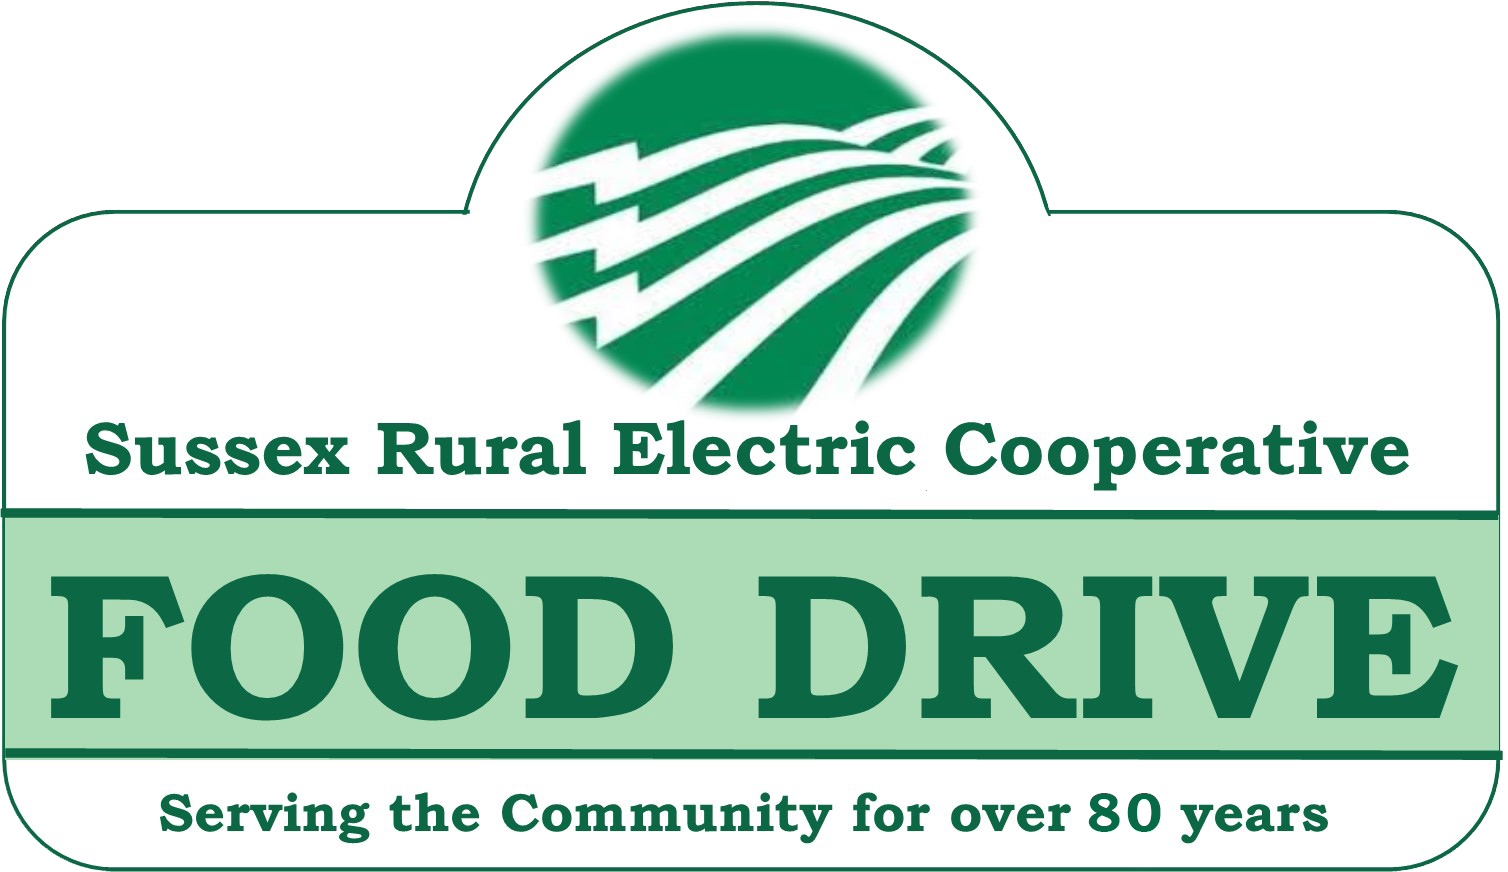 Sussex Rural Electric Cooperative Food Drive